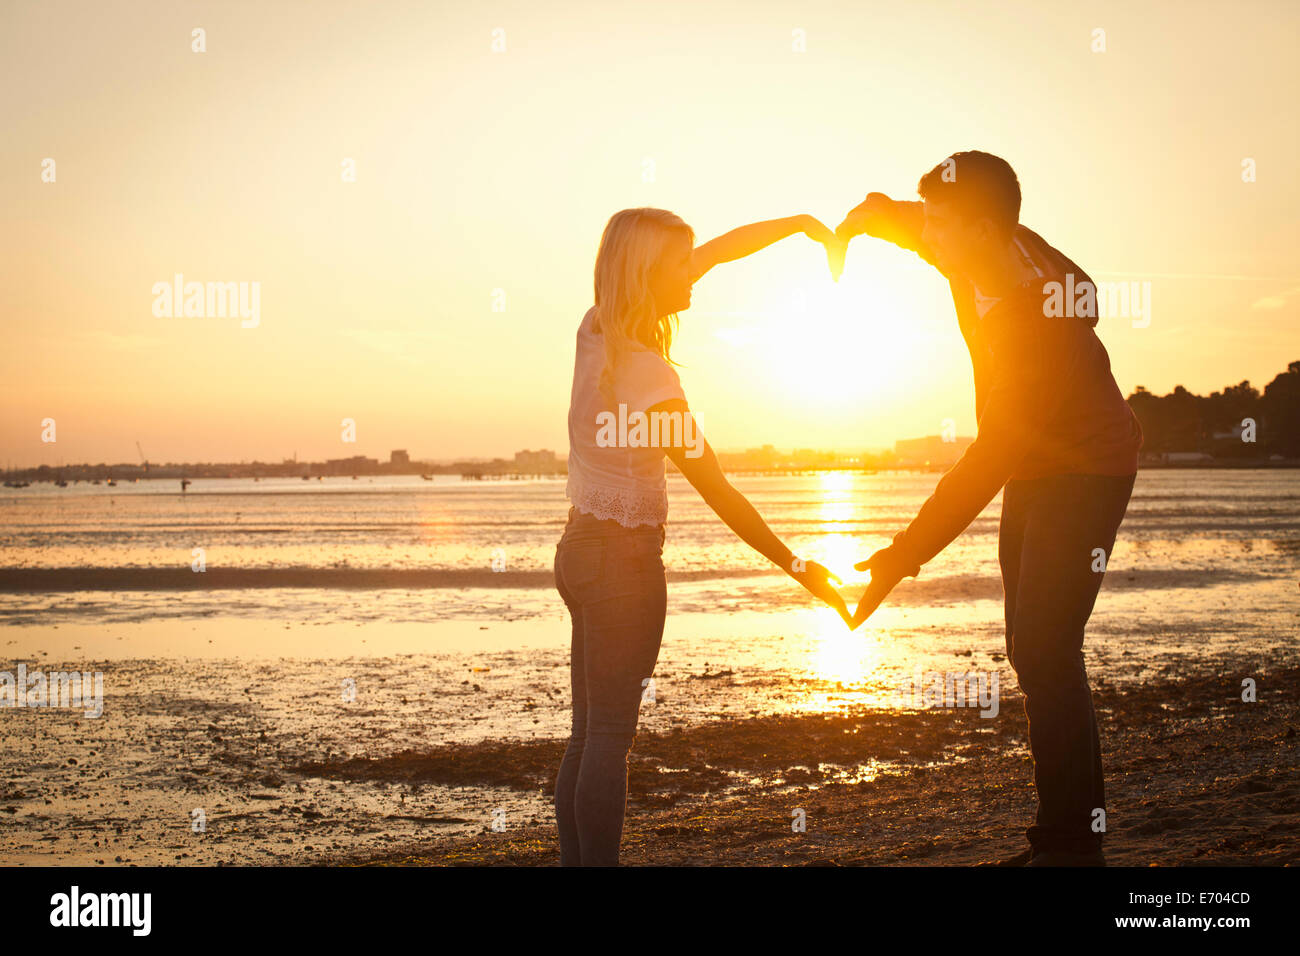 Couple forming heart shape with arms on beach at sunset - Stock Image